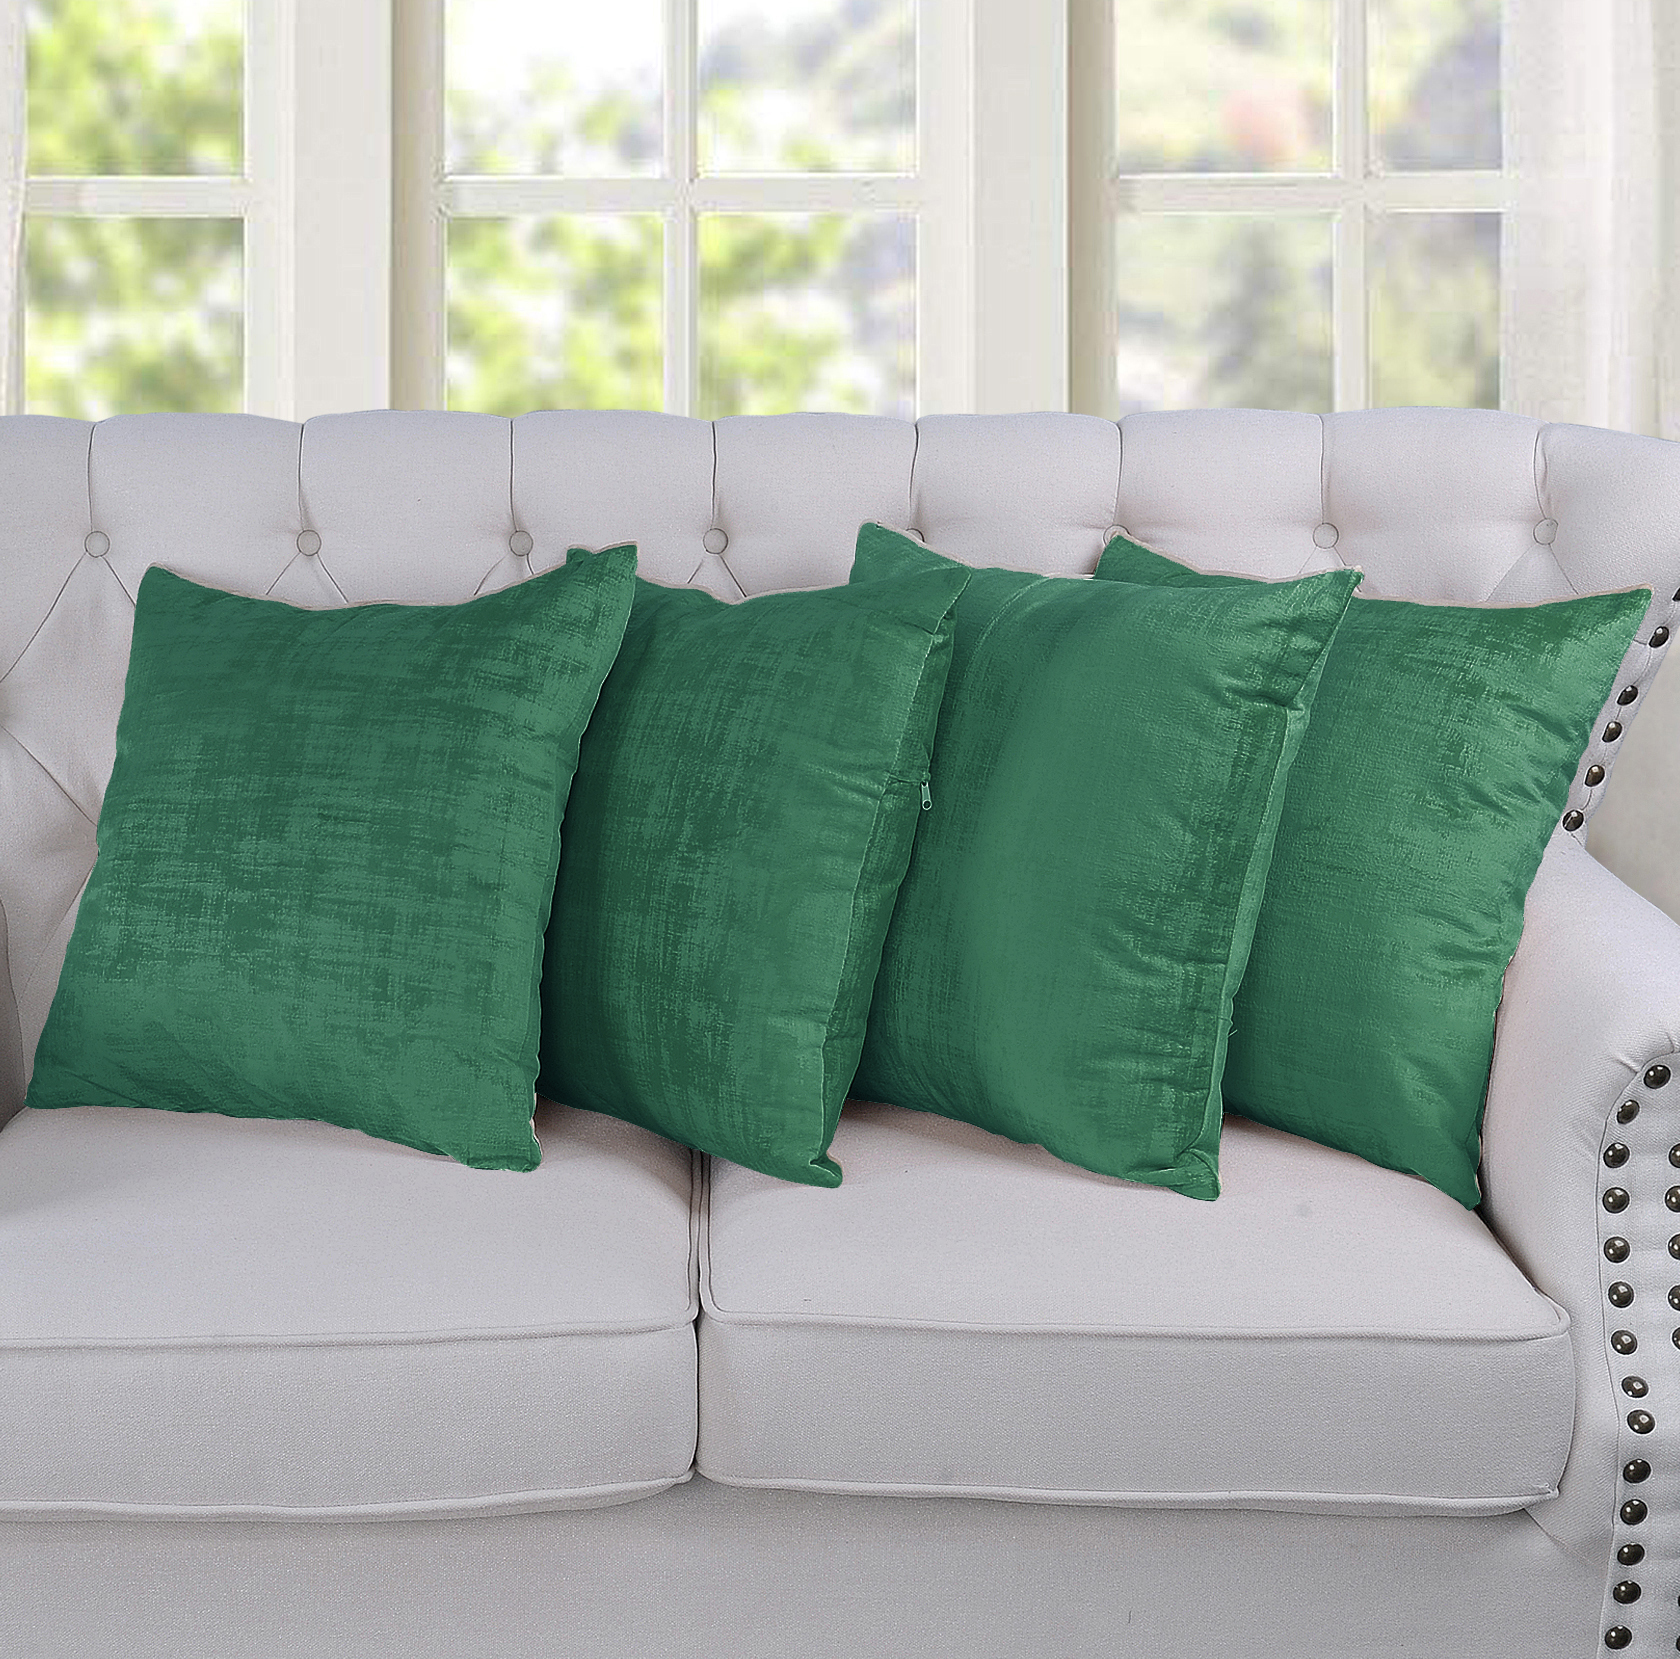 Serenta Textured Velvet 4 Piece Pillow Shell Set